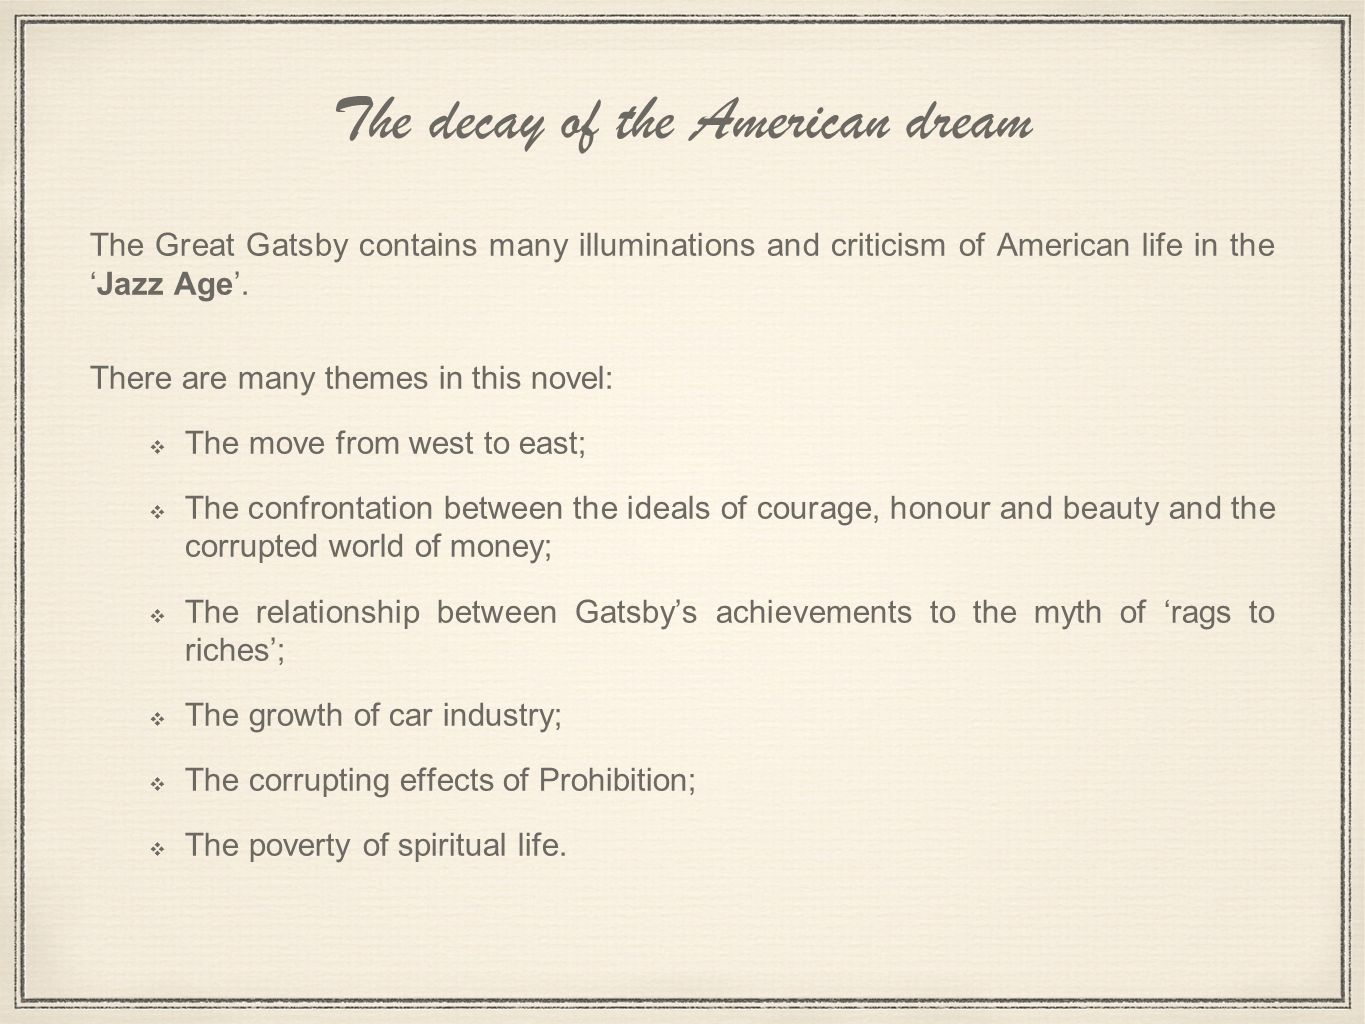 the failure of the american dream in the great gatsby essay